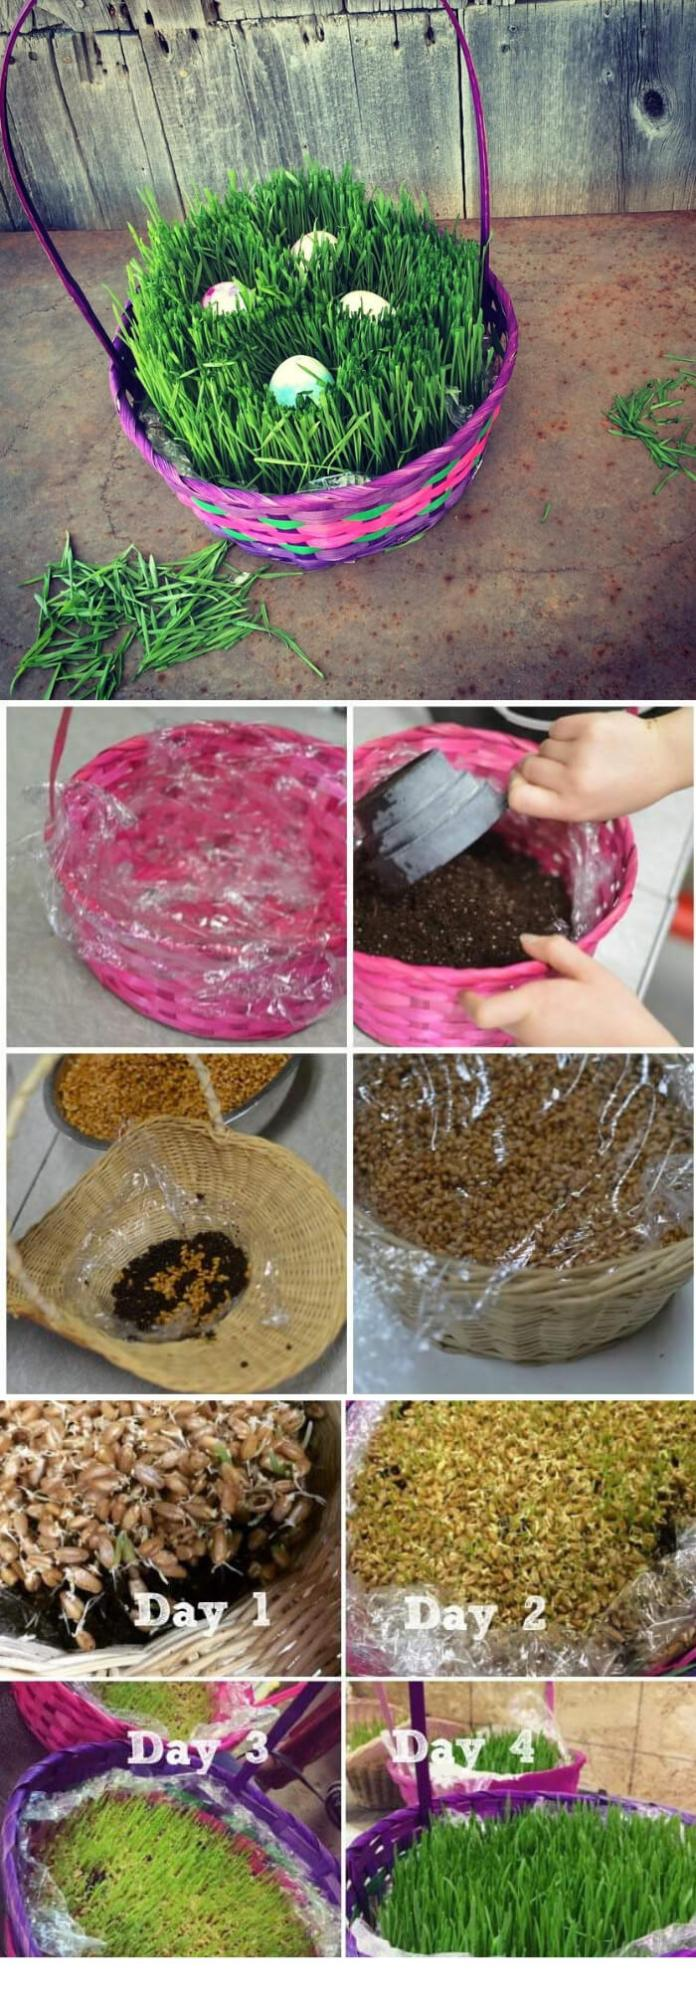 Grow Your Own Easter Basket Grass | Creative Easter Garden Projects & Ideas Your Kids Will Love